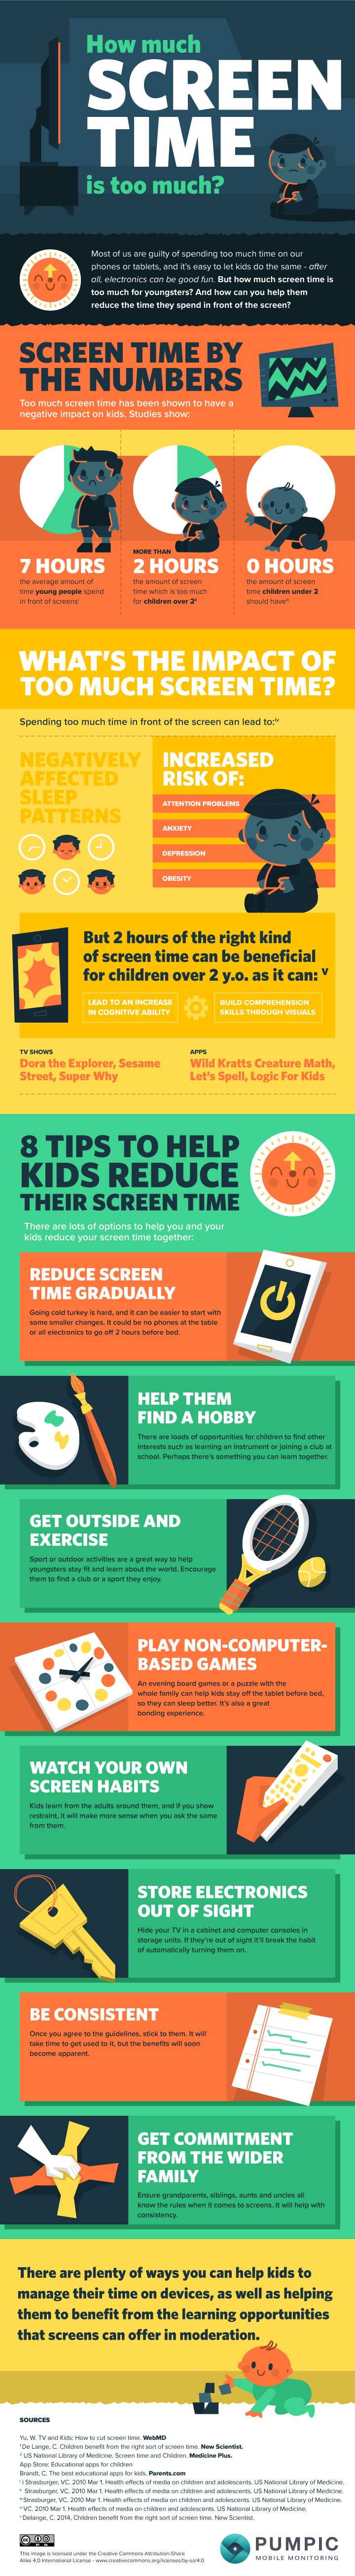 8 Must-Follow Tips to Manage Kids